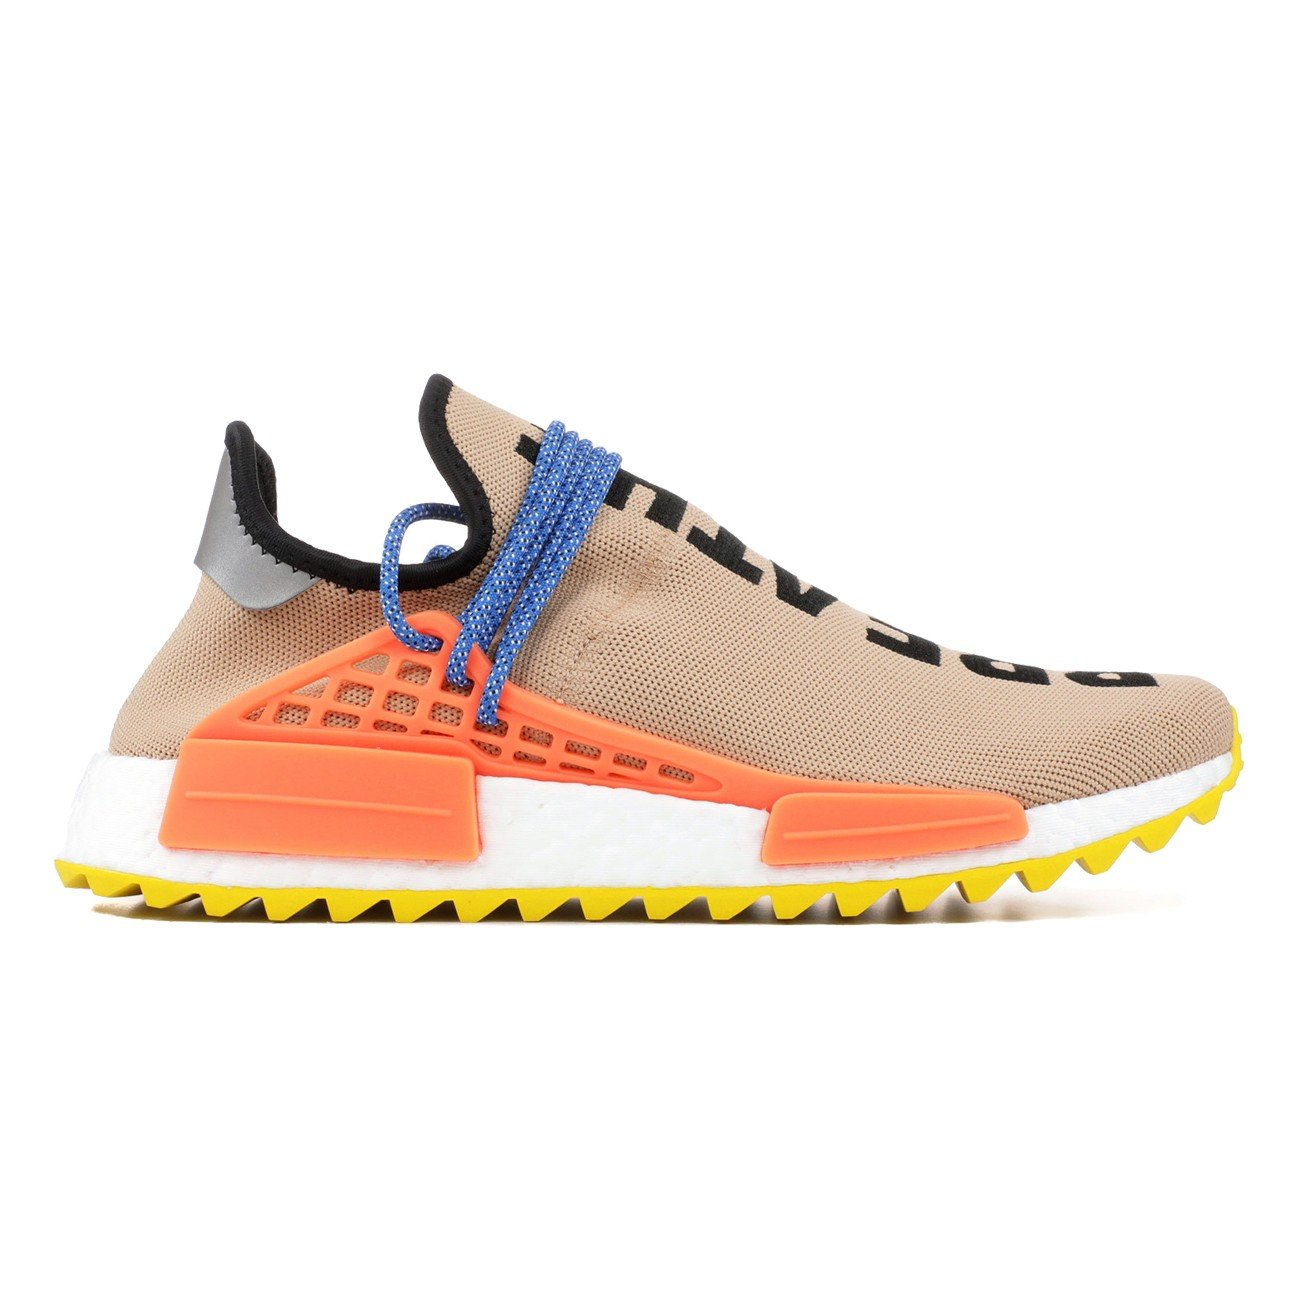 e110fc931 Amazon.com  Men Women Human Race Sneaker Real Boost Casual Breathable  Lightweight Mesh Shoes  Clothing